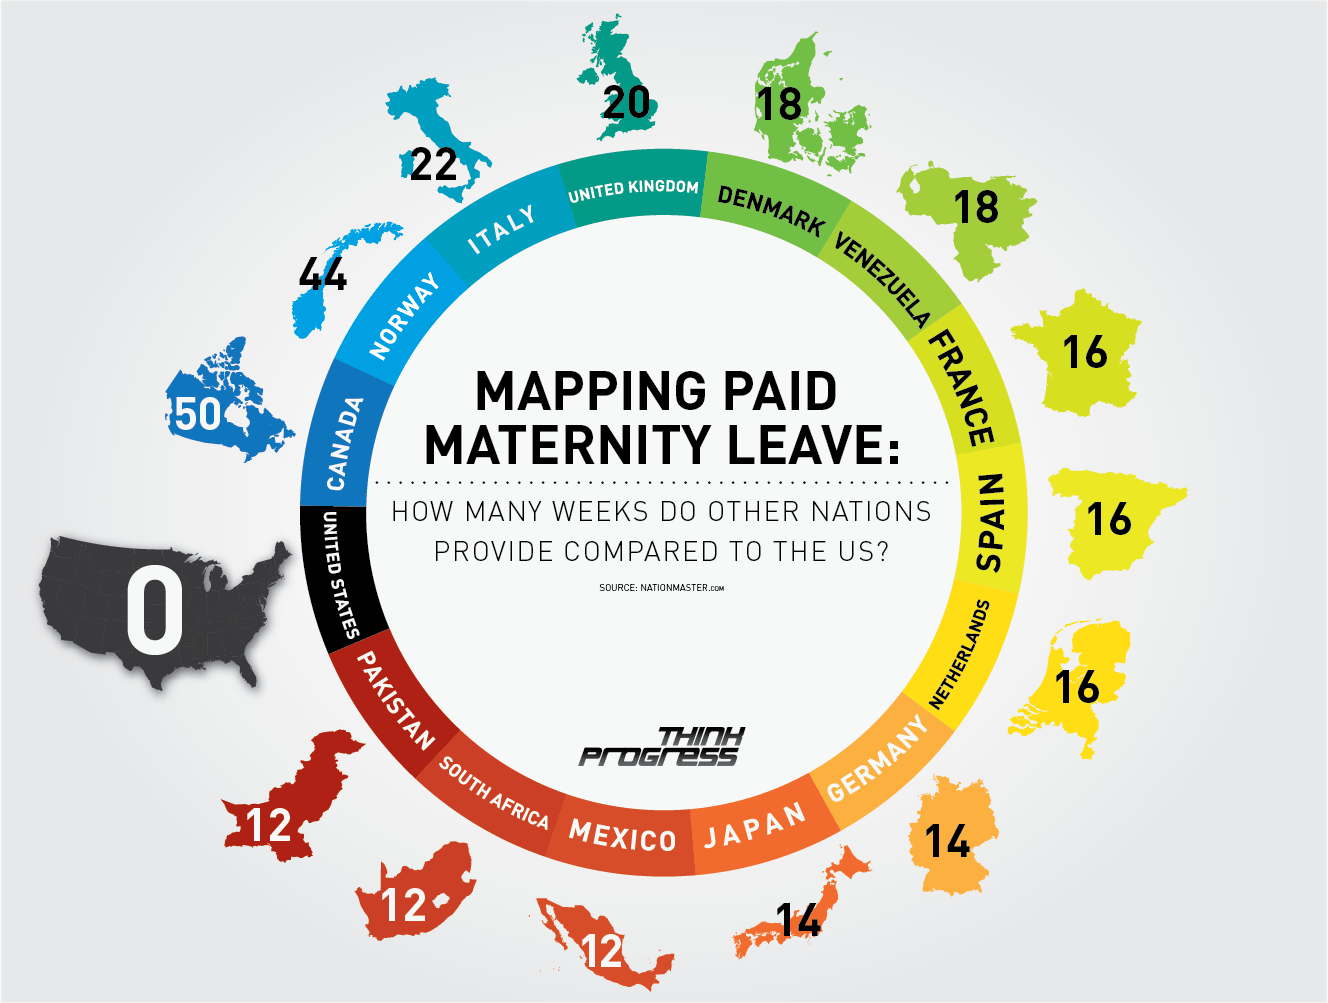 What to do on maternity leave to earn 83